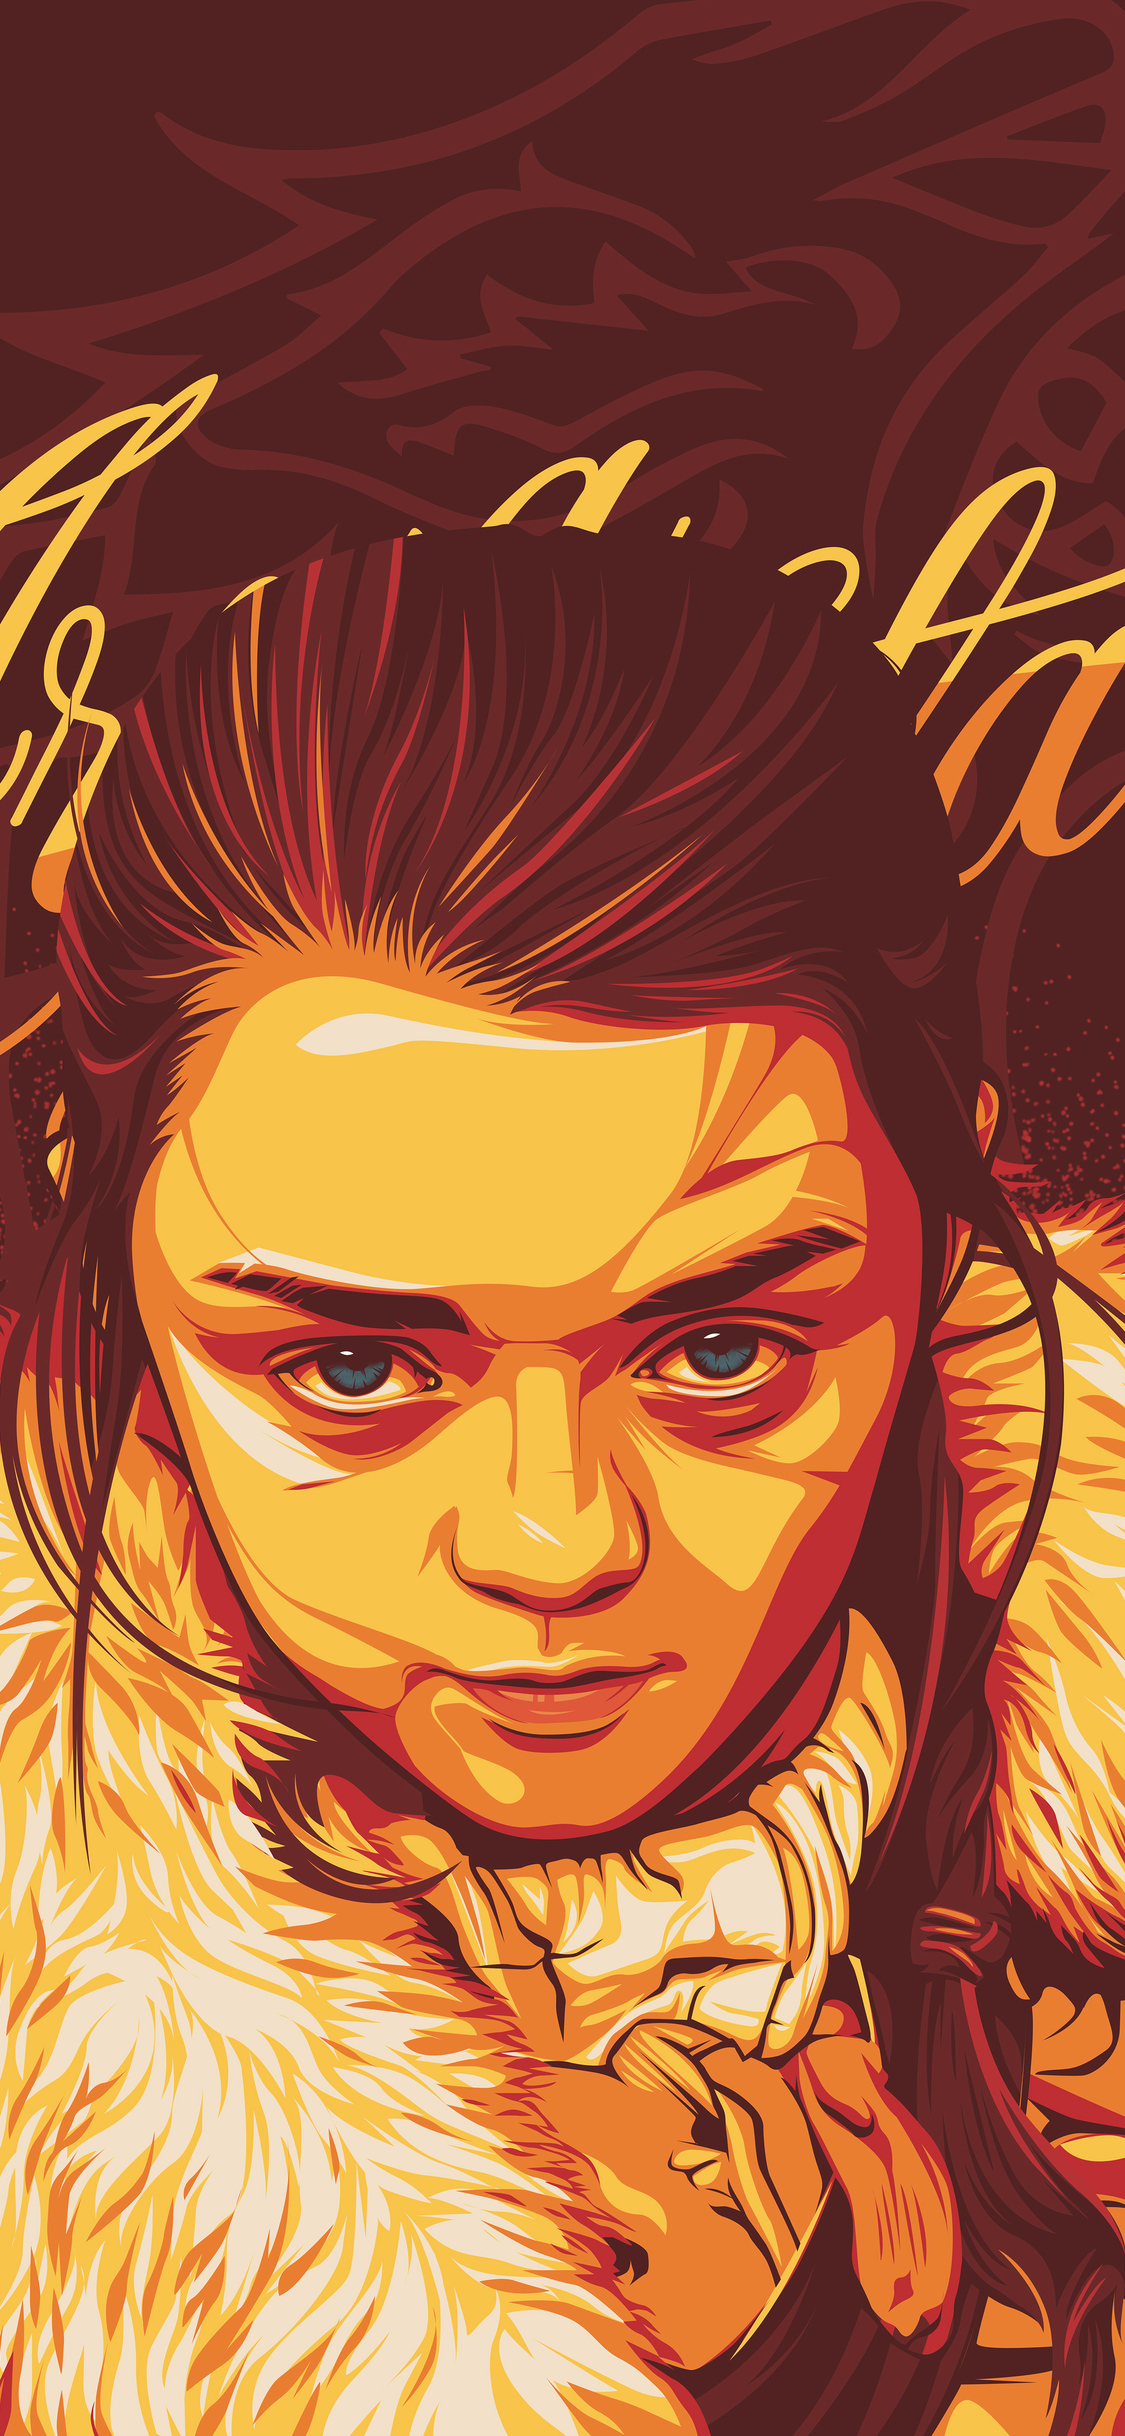 arya stark digital art z7 1125x2436 iPhone game of thrones wallpaper - Tổng hợp ảnh nền Game of Thrones đẹp nhất cho iPhone